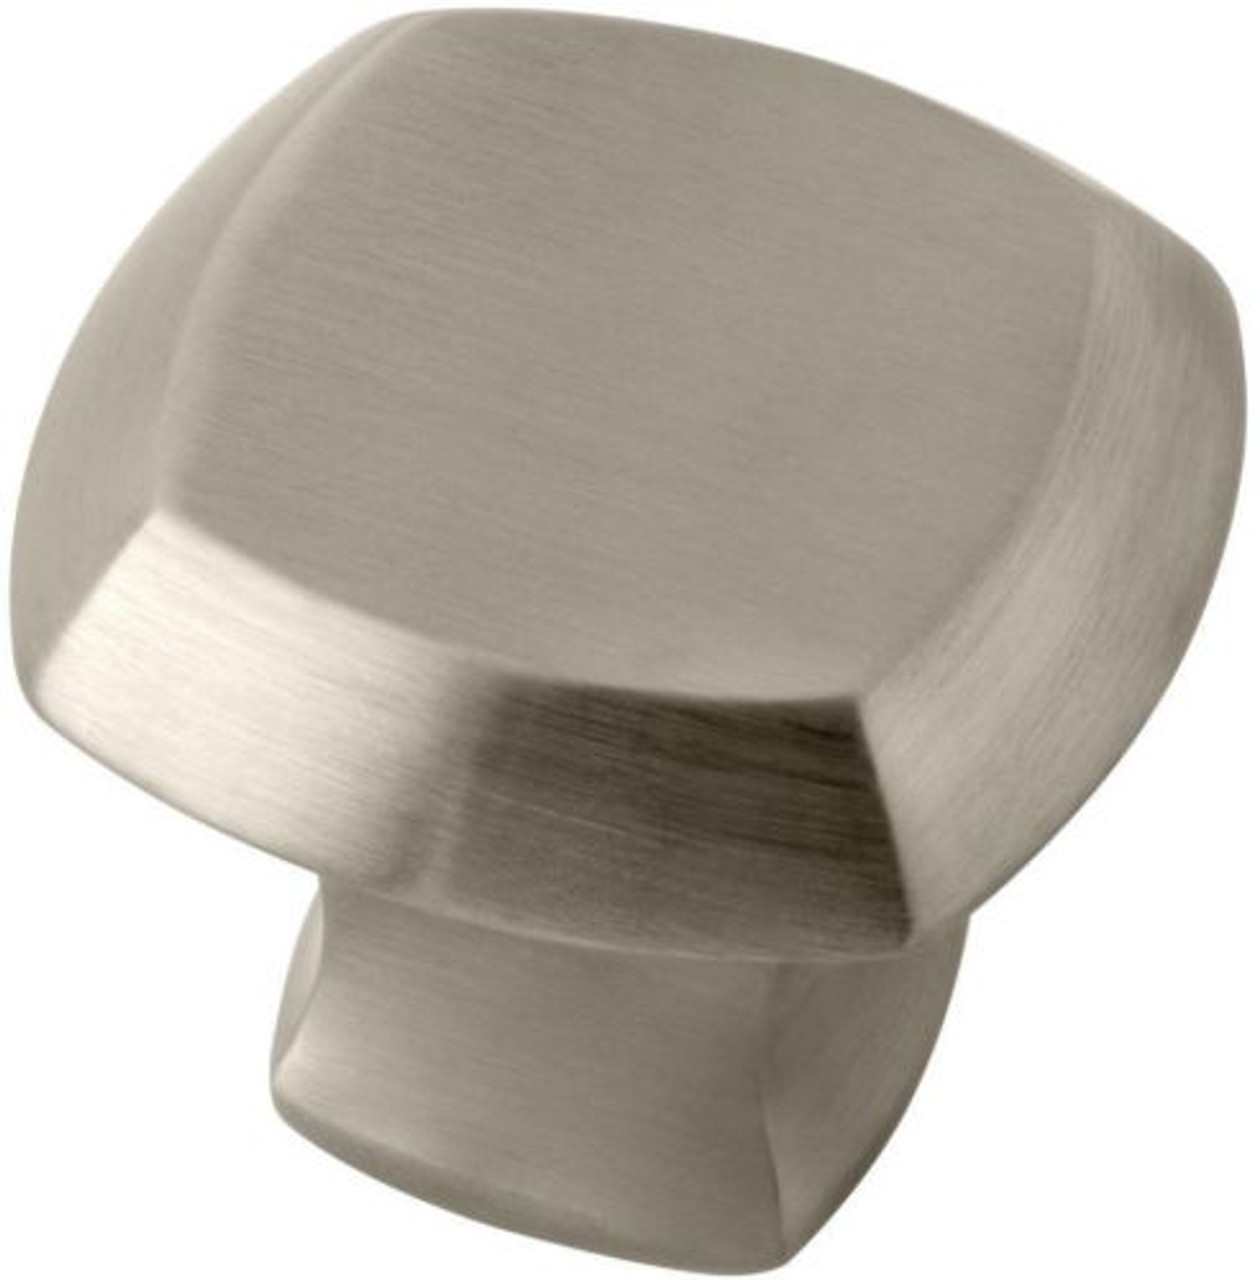 Delta 164229 Mandara Knob For Pivot Shower Door In Bruahed Nickel 2 Pack